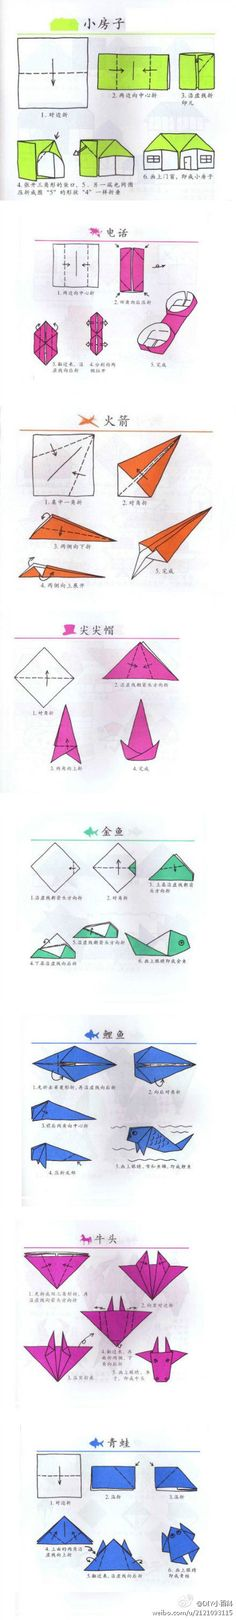 1000+ images about Keep Calm Do Origami :-) on Pinterest ... - photo#38